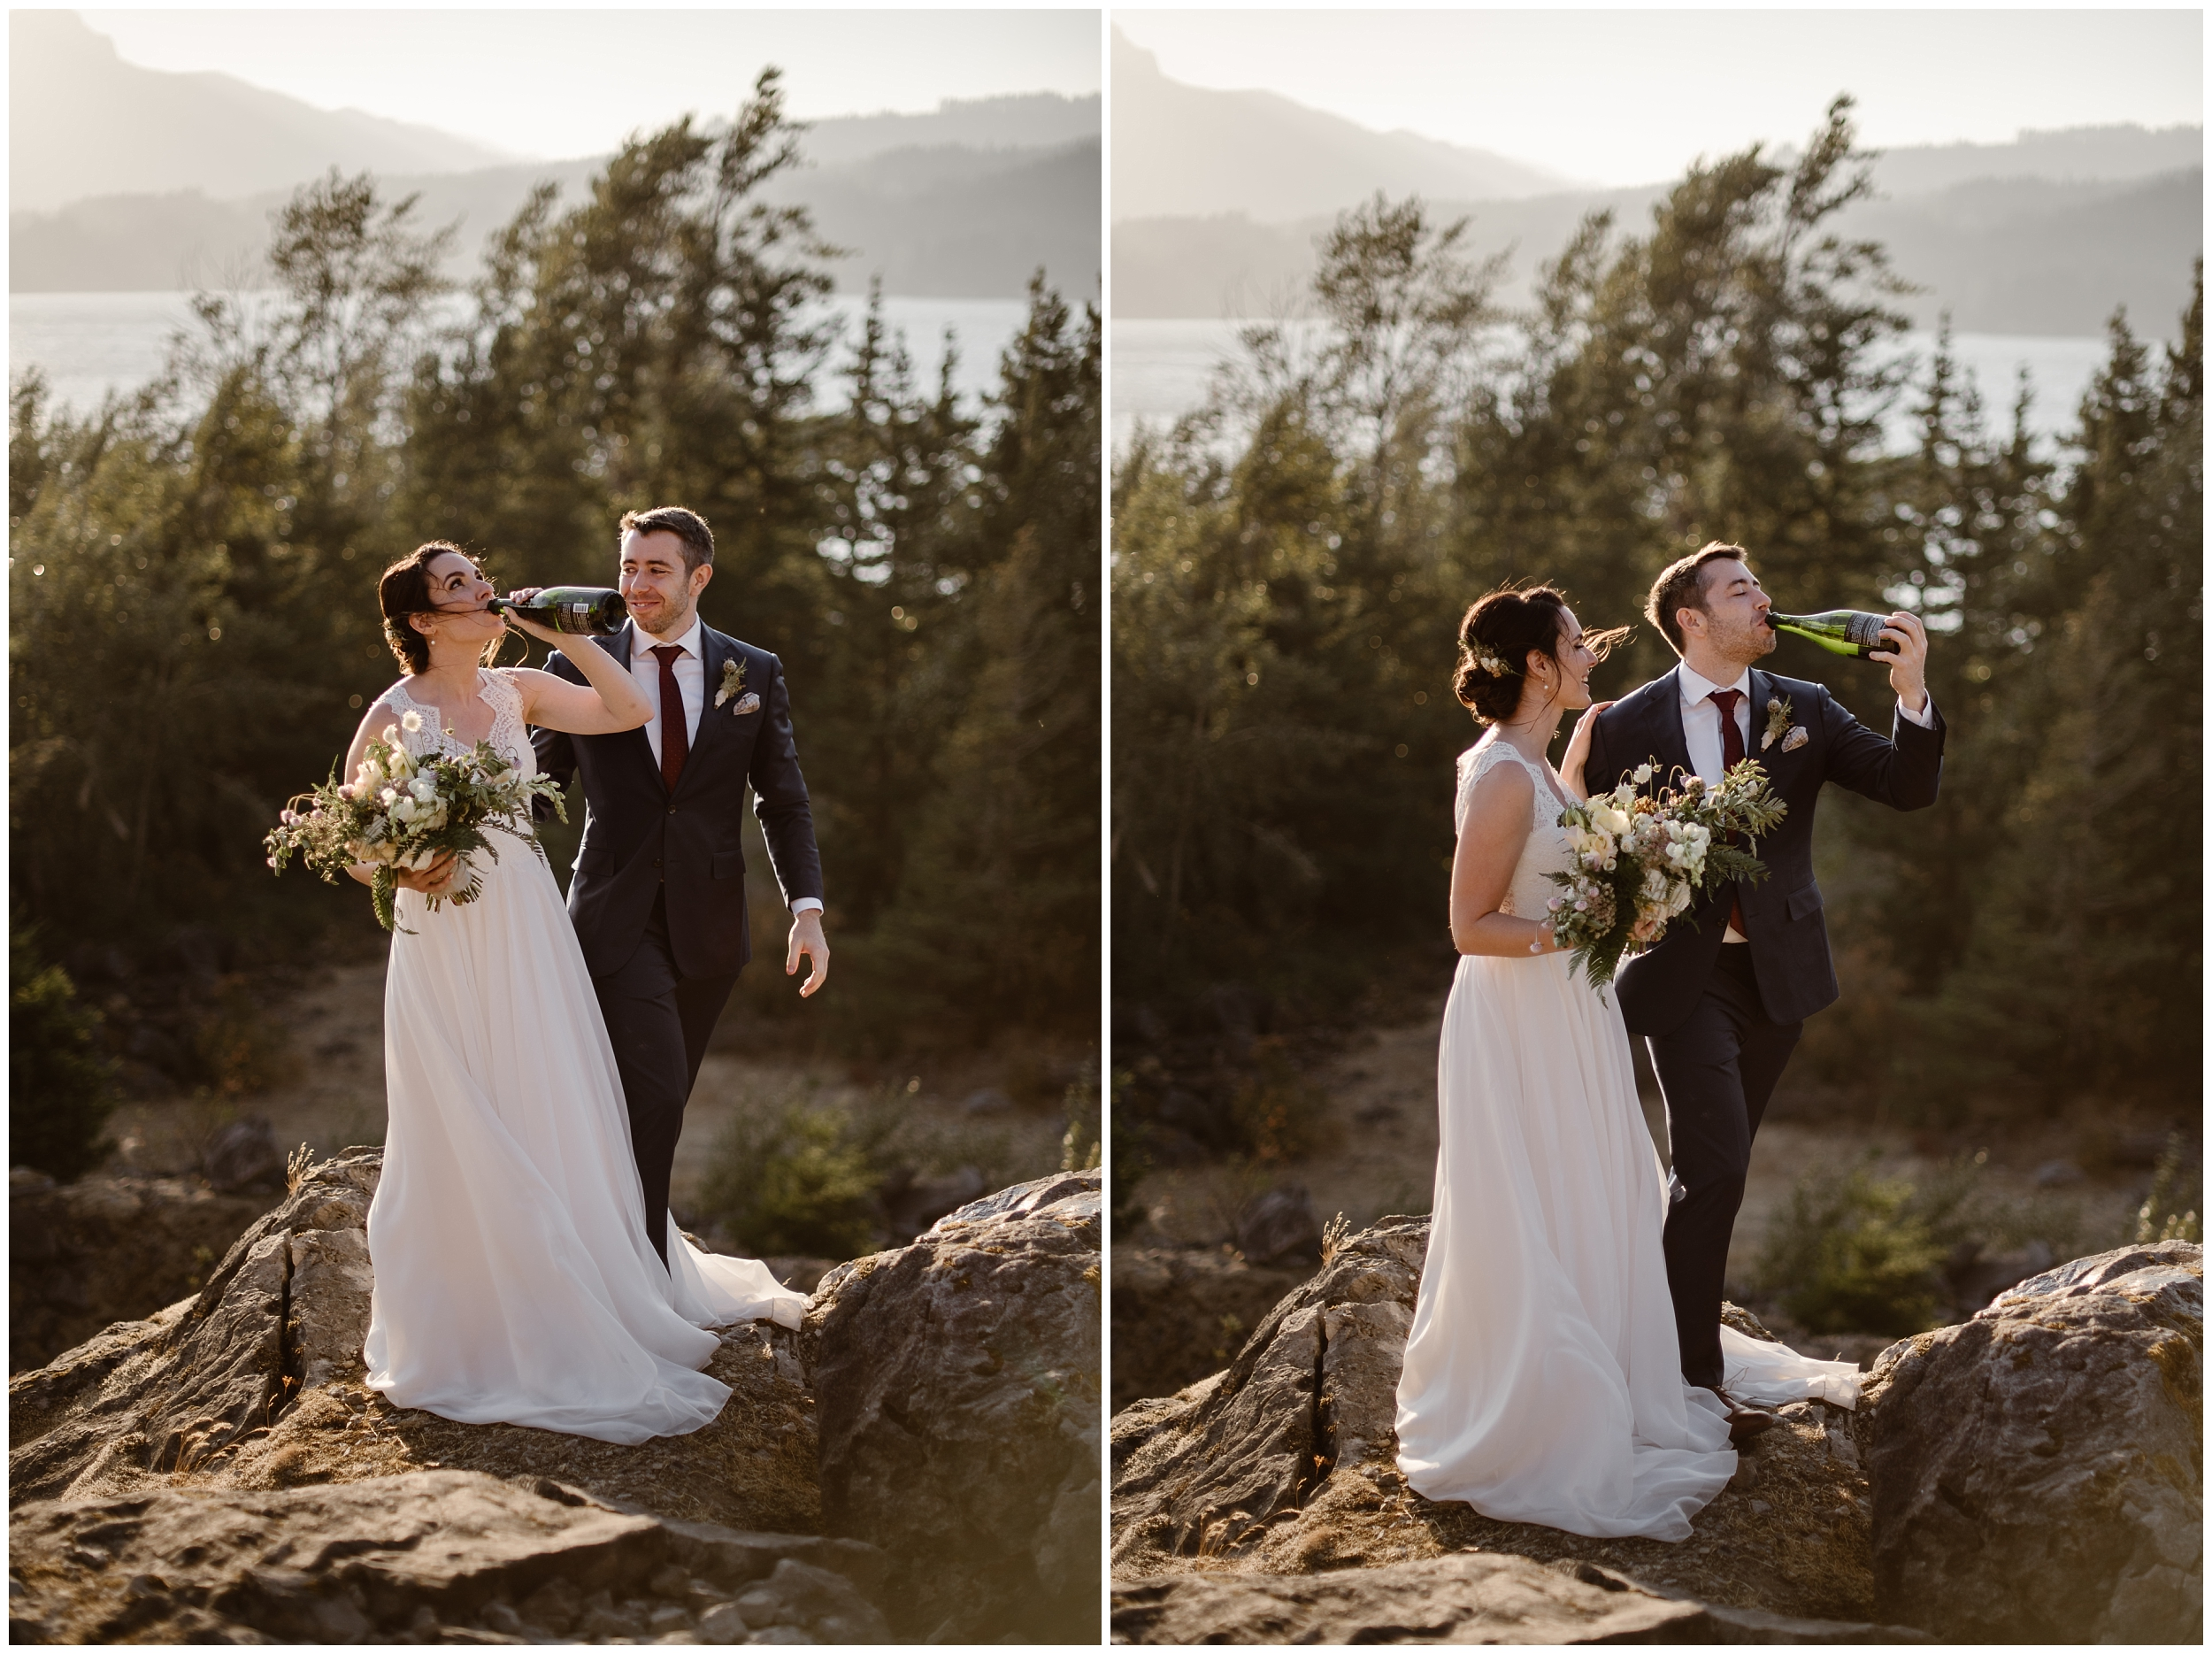 Lauryn and David both take a swig of their celebratory champagne in these side-by-side elopement photos captured by Portland elopement photographer Adventure Instead.